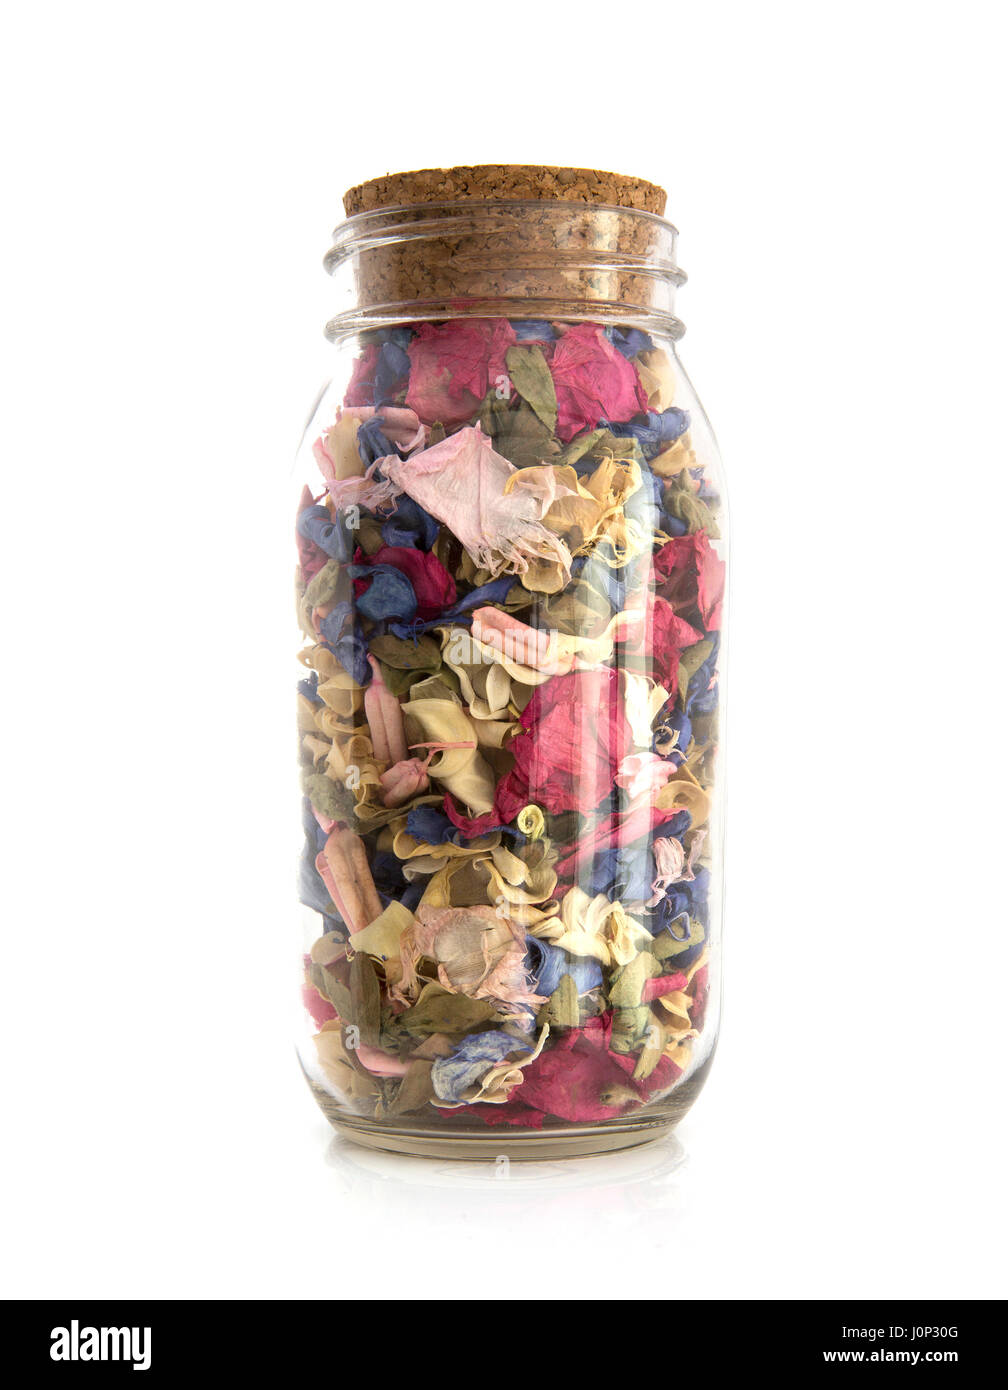 Colourful Potpourri in a jar on a white background - Stock Image